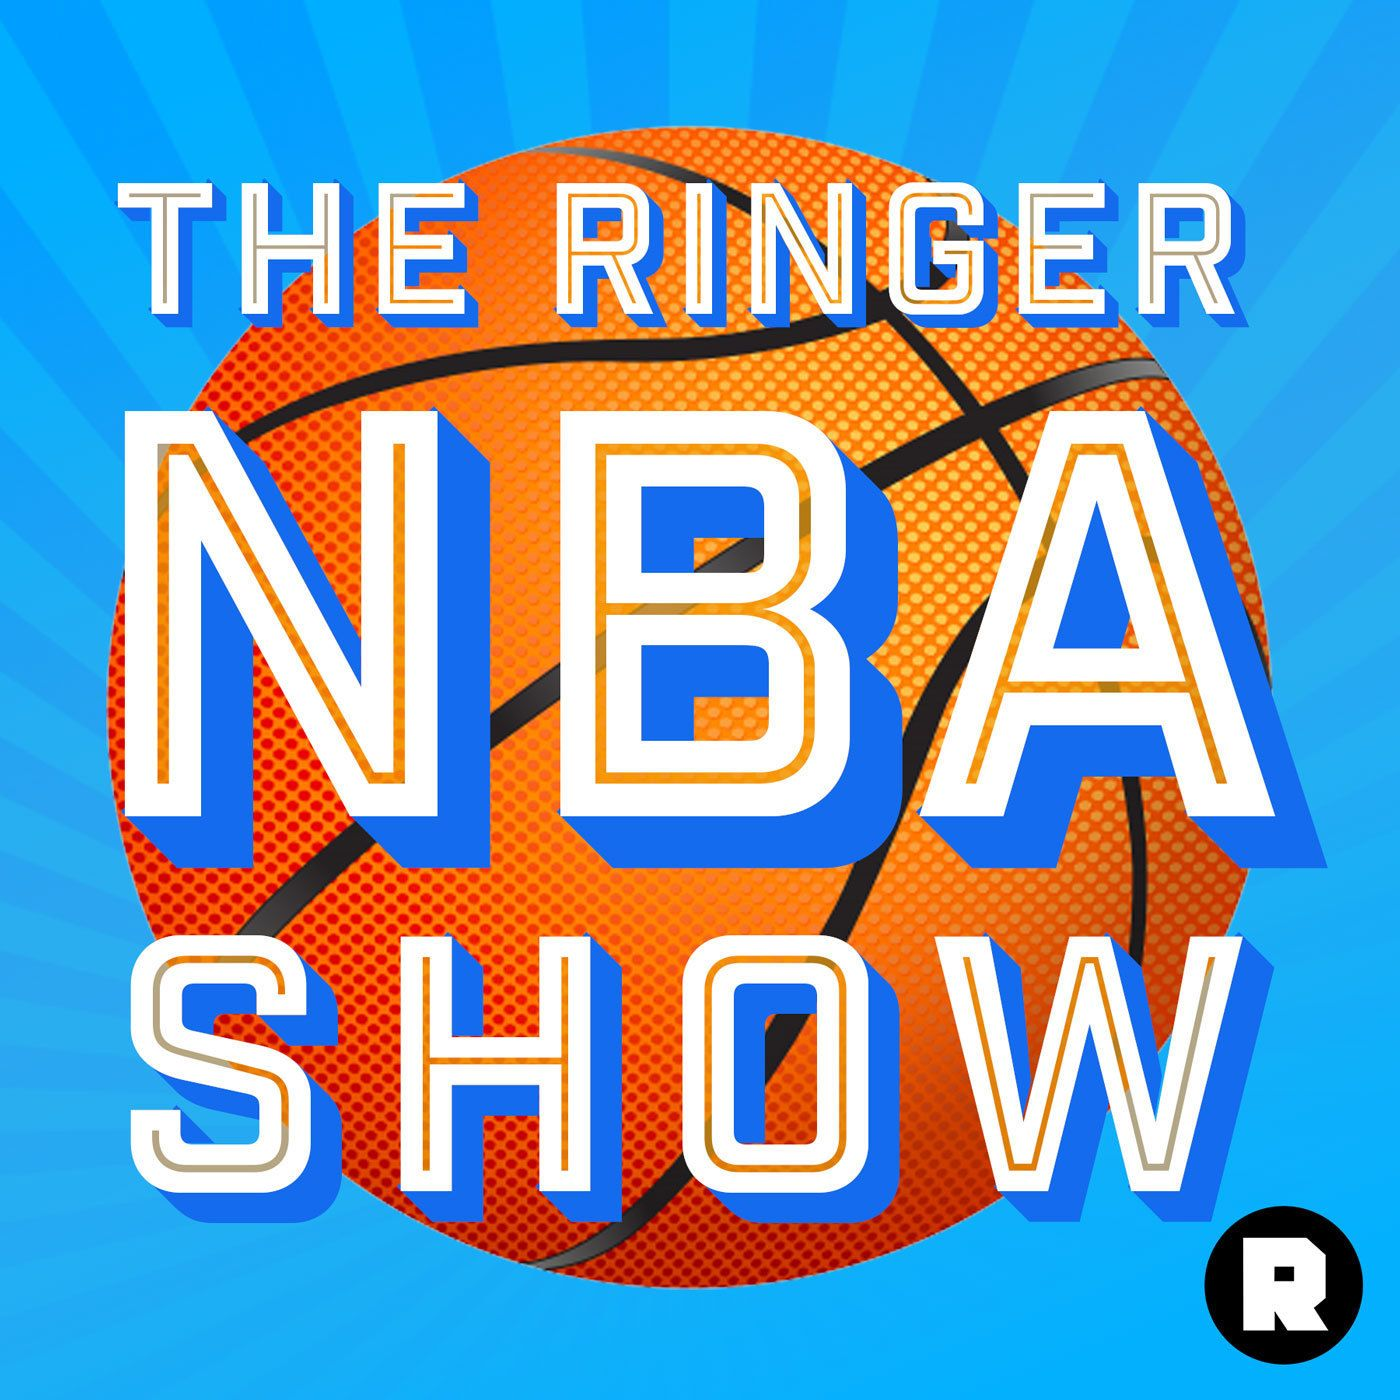 The Passing of Jerry Sloan, the NBA's COVID Testing Plan, and Mailbag Questions | The Mismatch